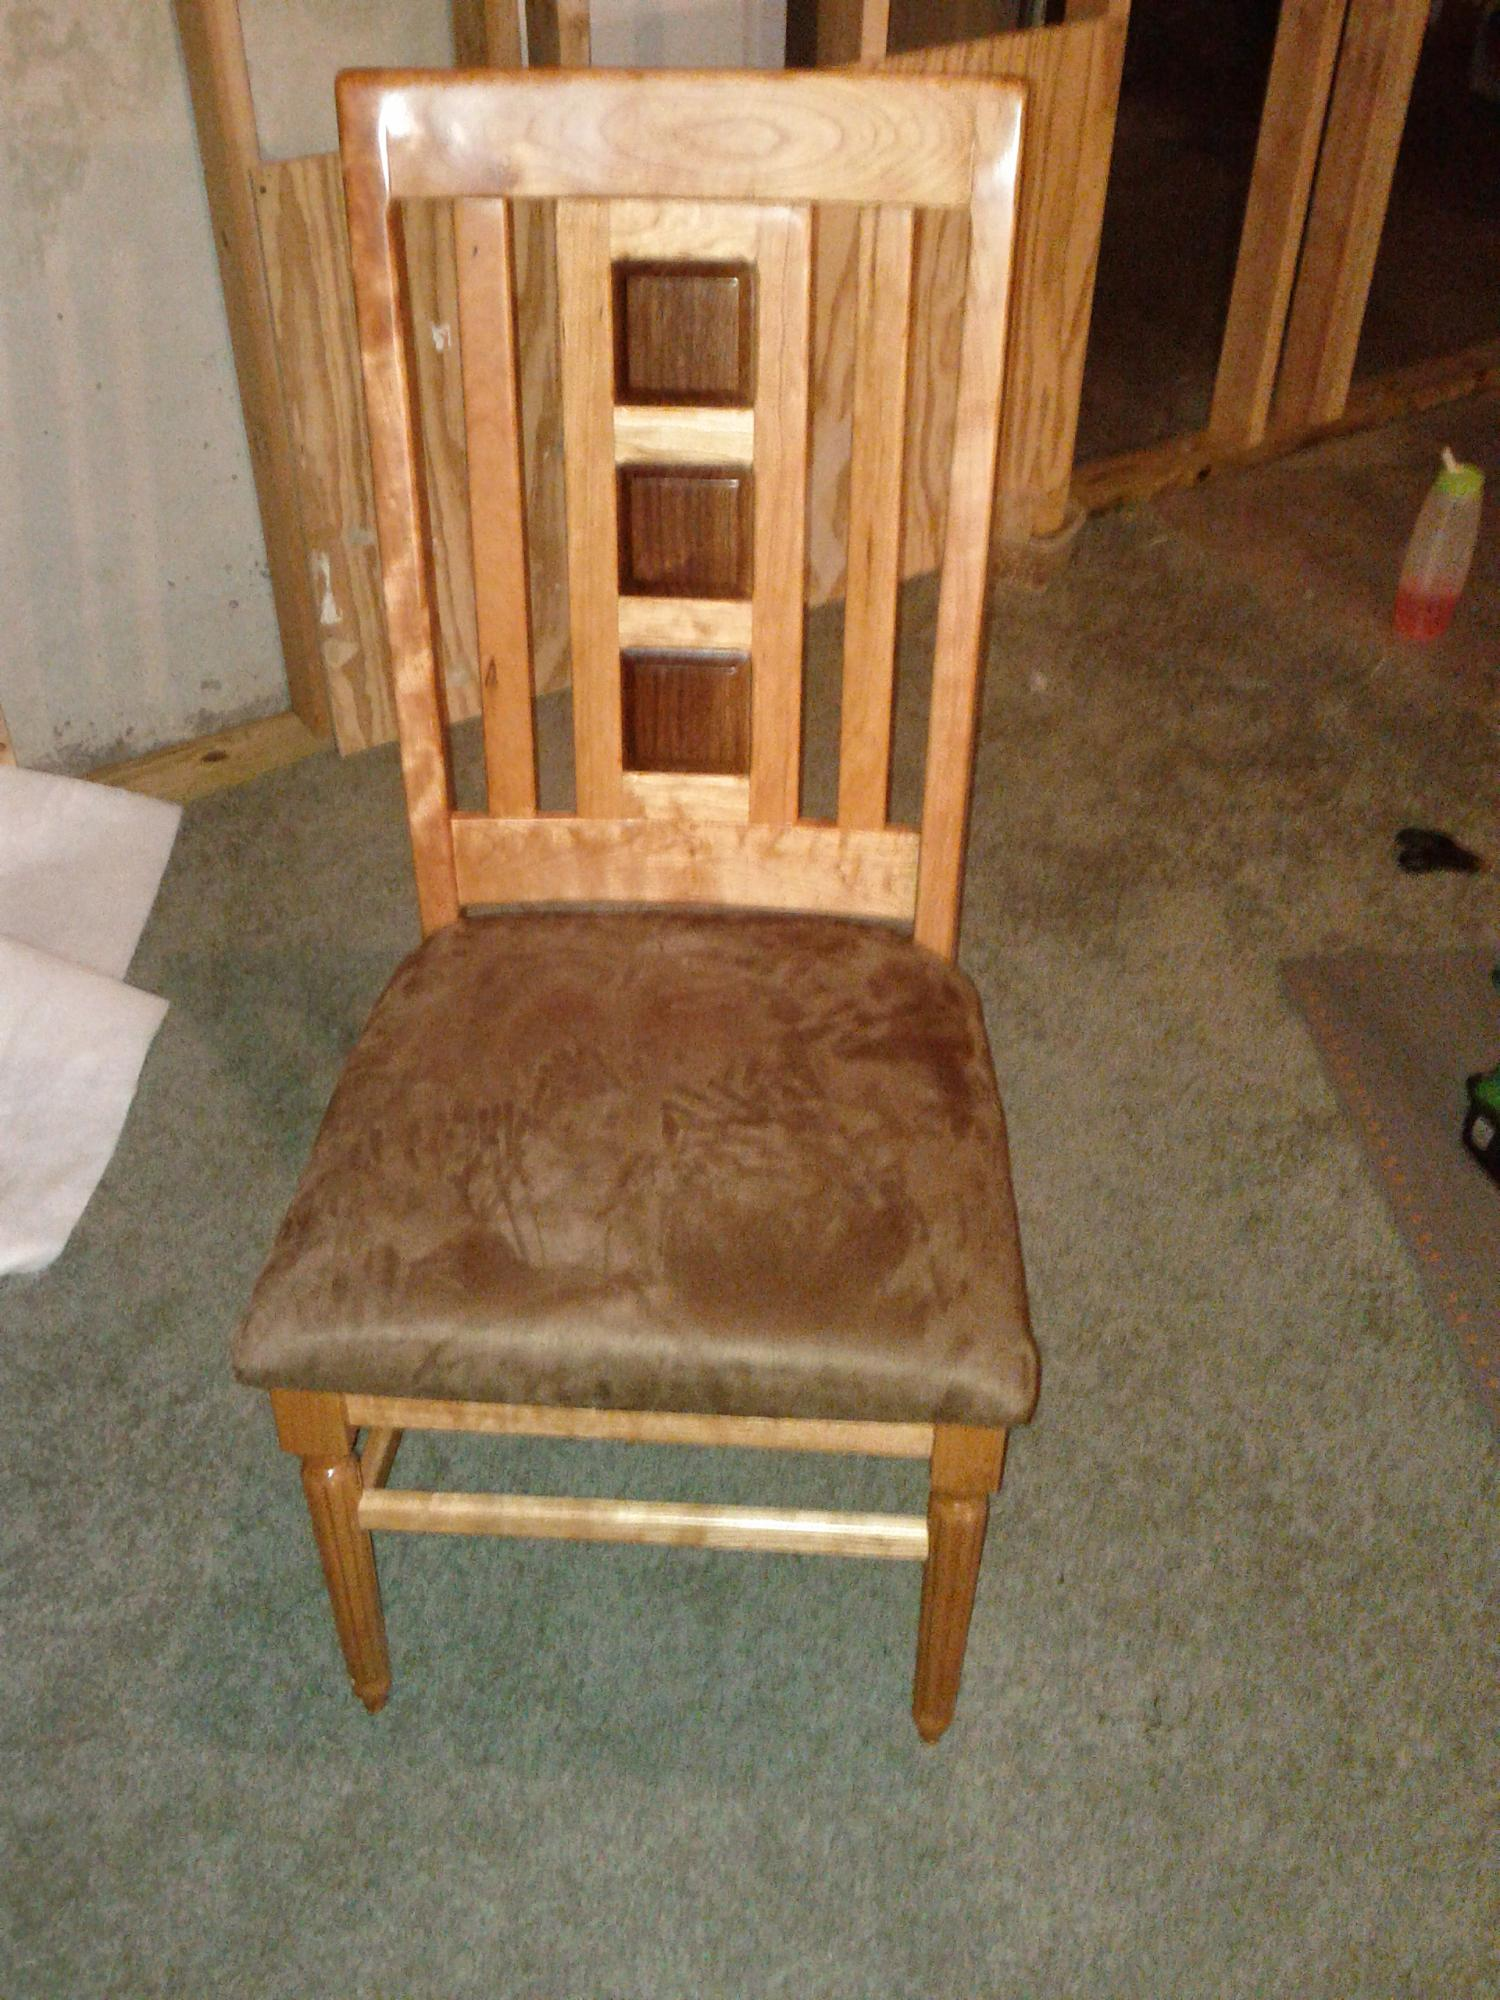 Mortise and tenon ???-completed-chair1.jpg